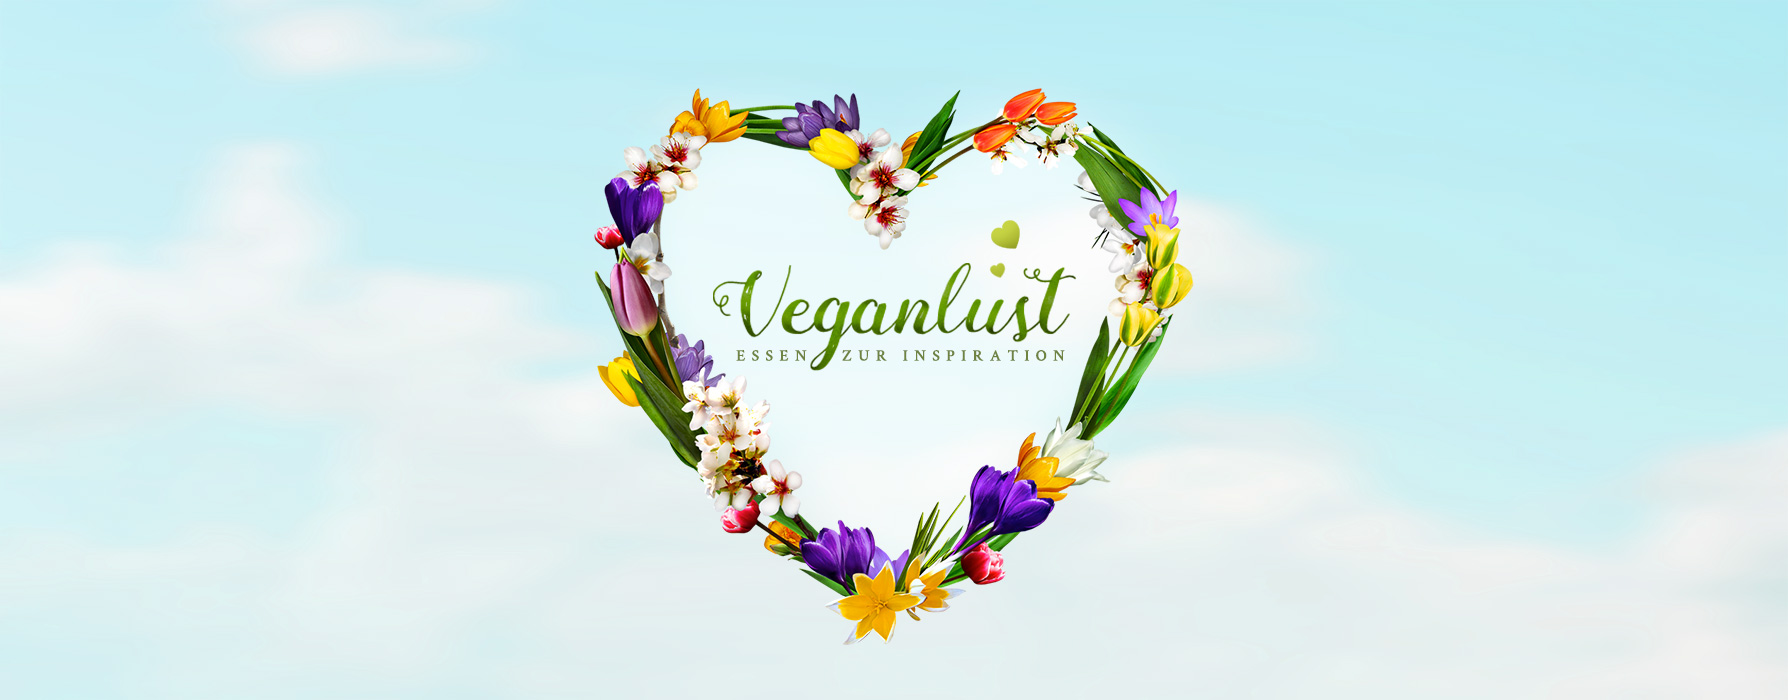 Veganlust website cover by Mediavuk